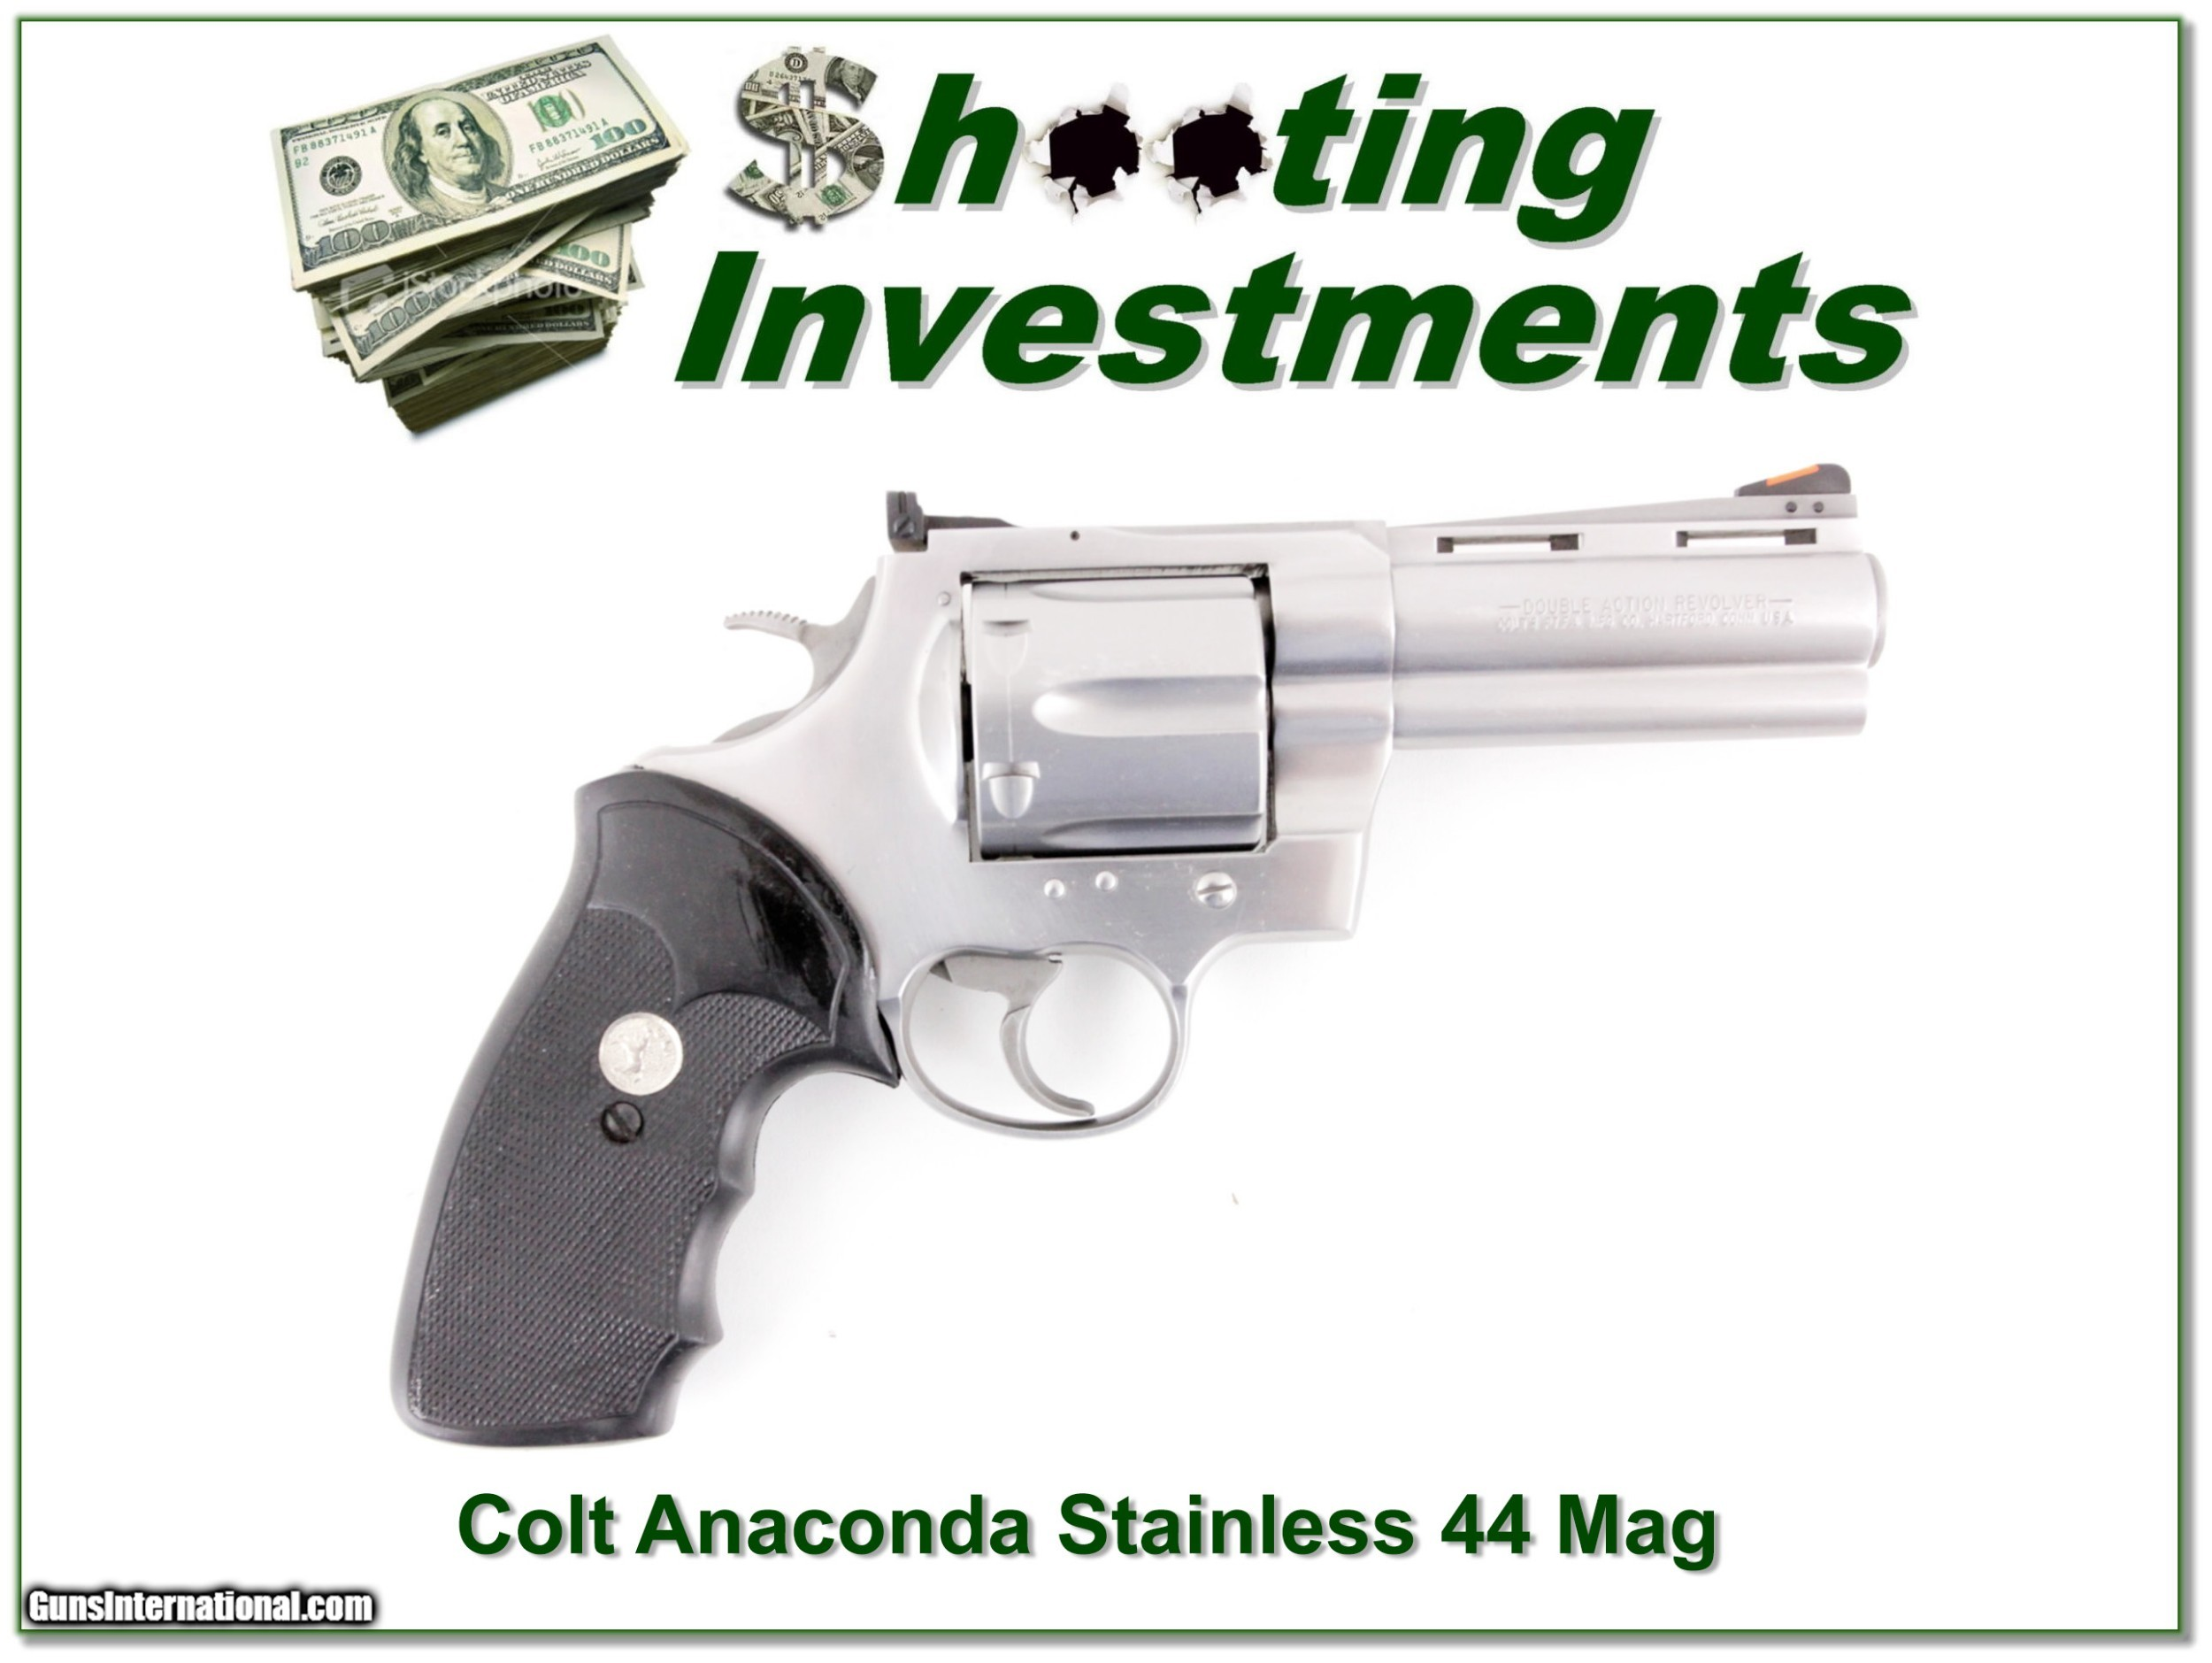 Colt Anaconda Stainless 44 Mag 4in